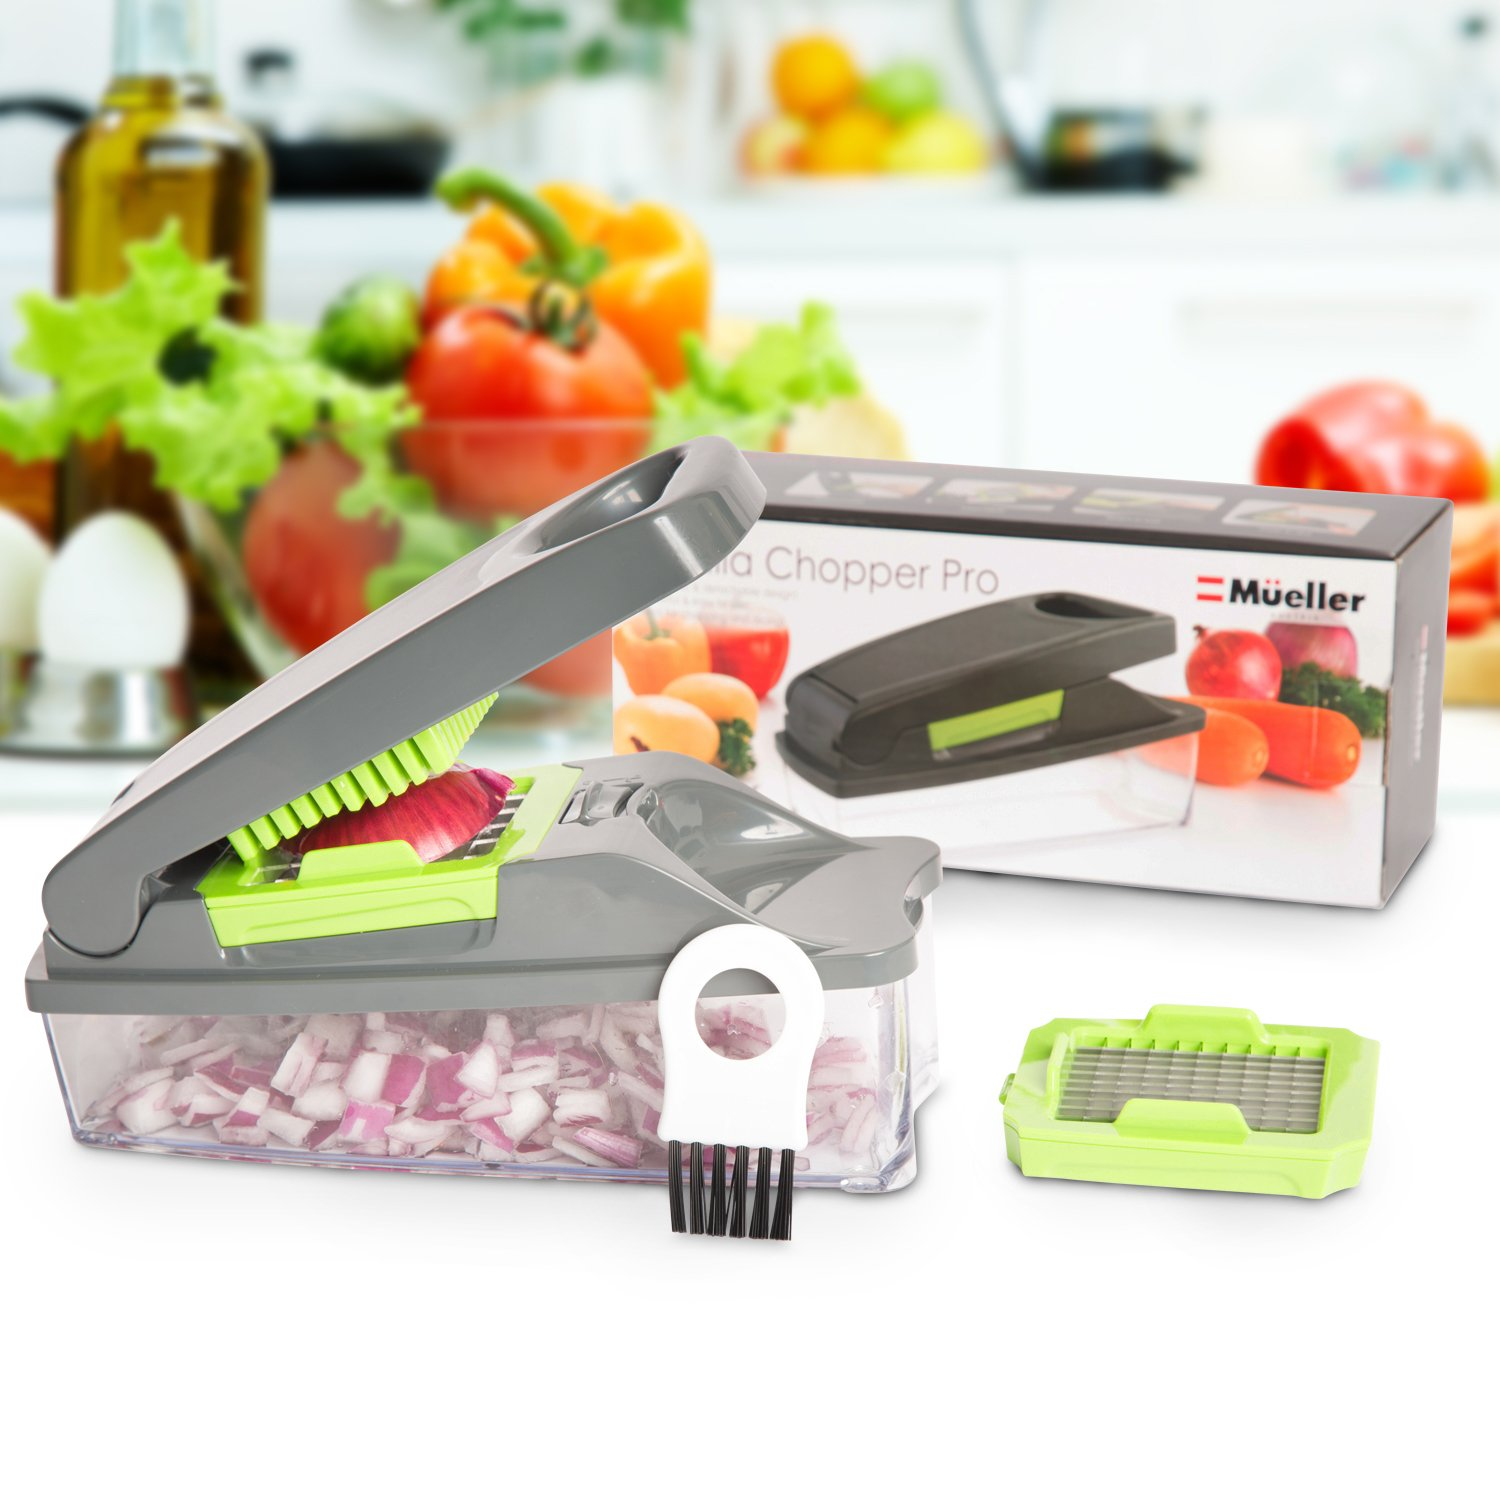 Vidalia Chopper Pro Vegetable Chopper by Mueller